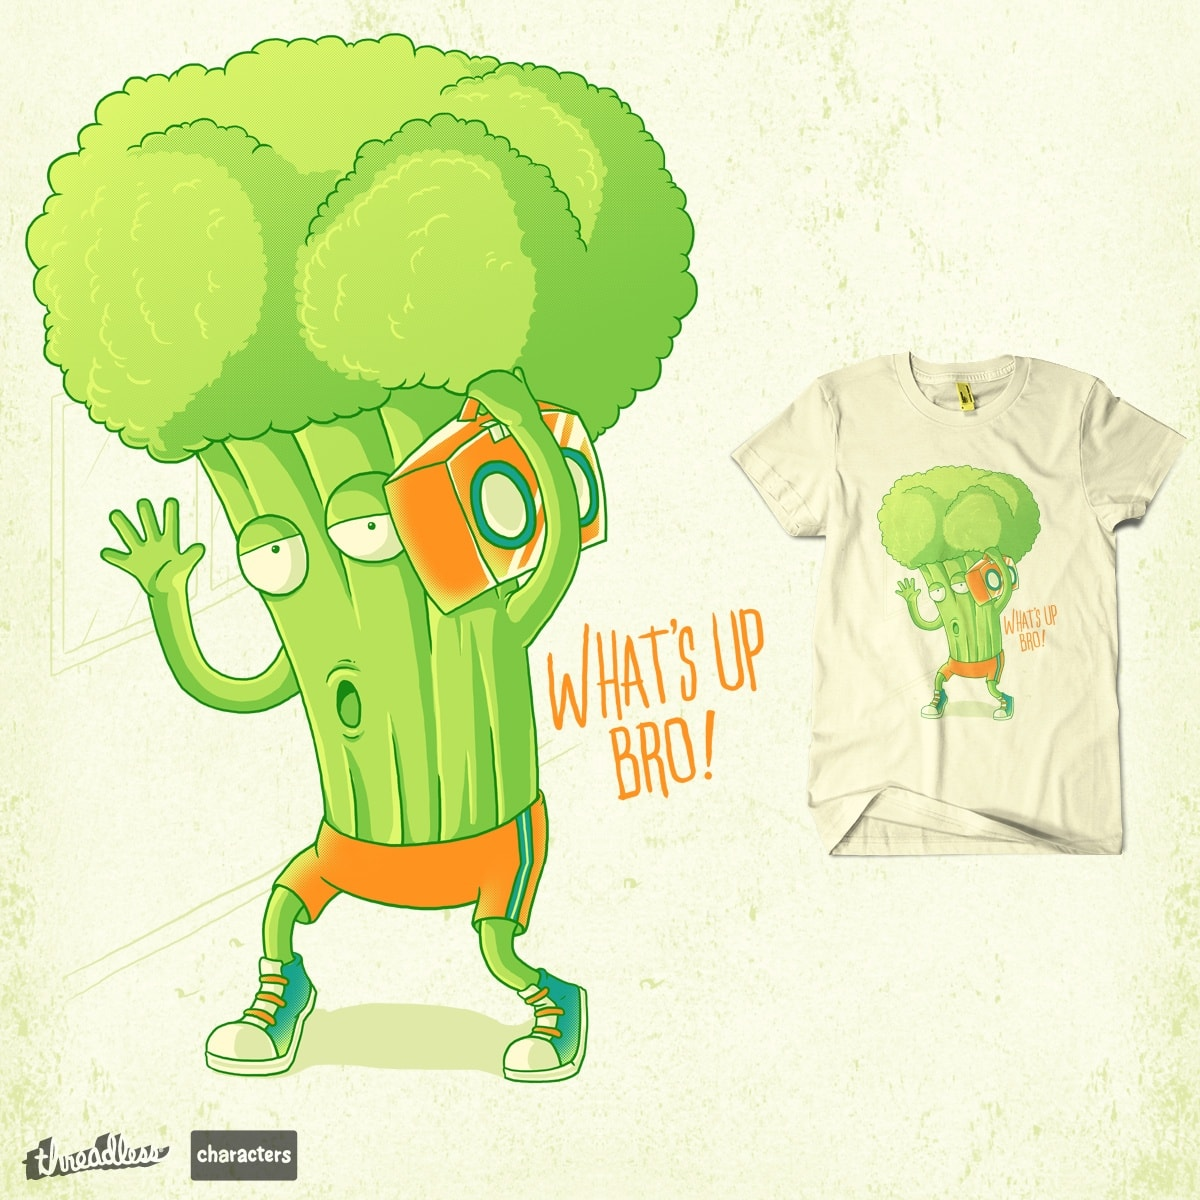 Mr. Broccoli by rifalisme on Threadless